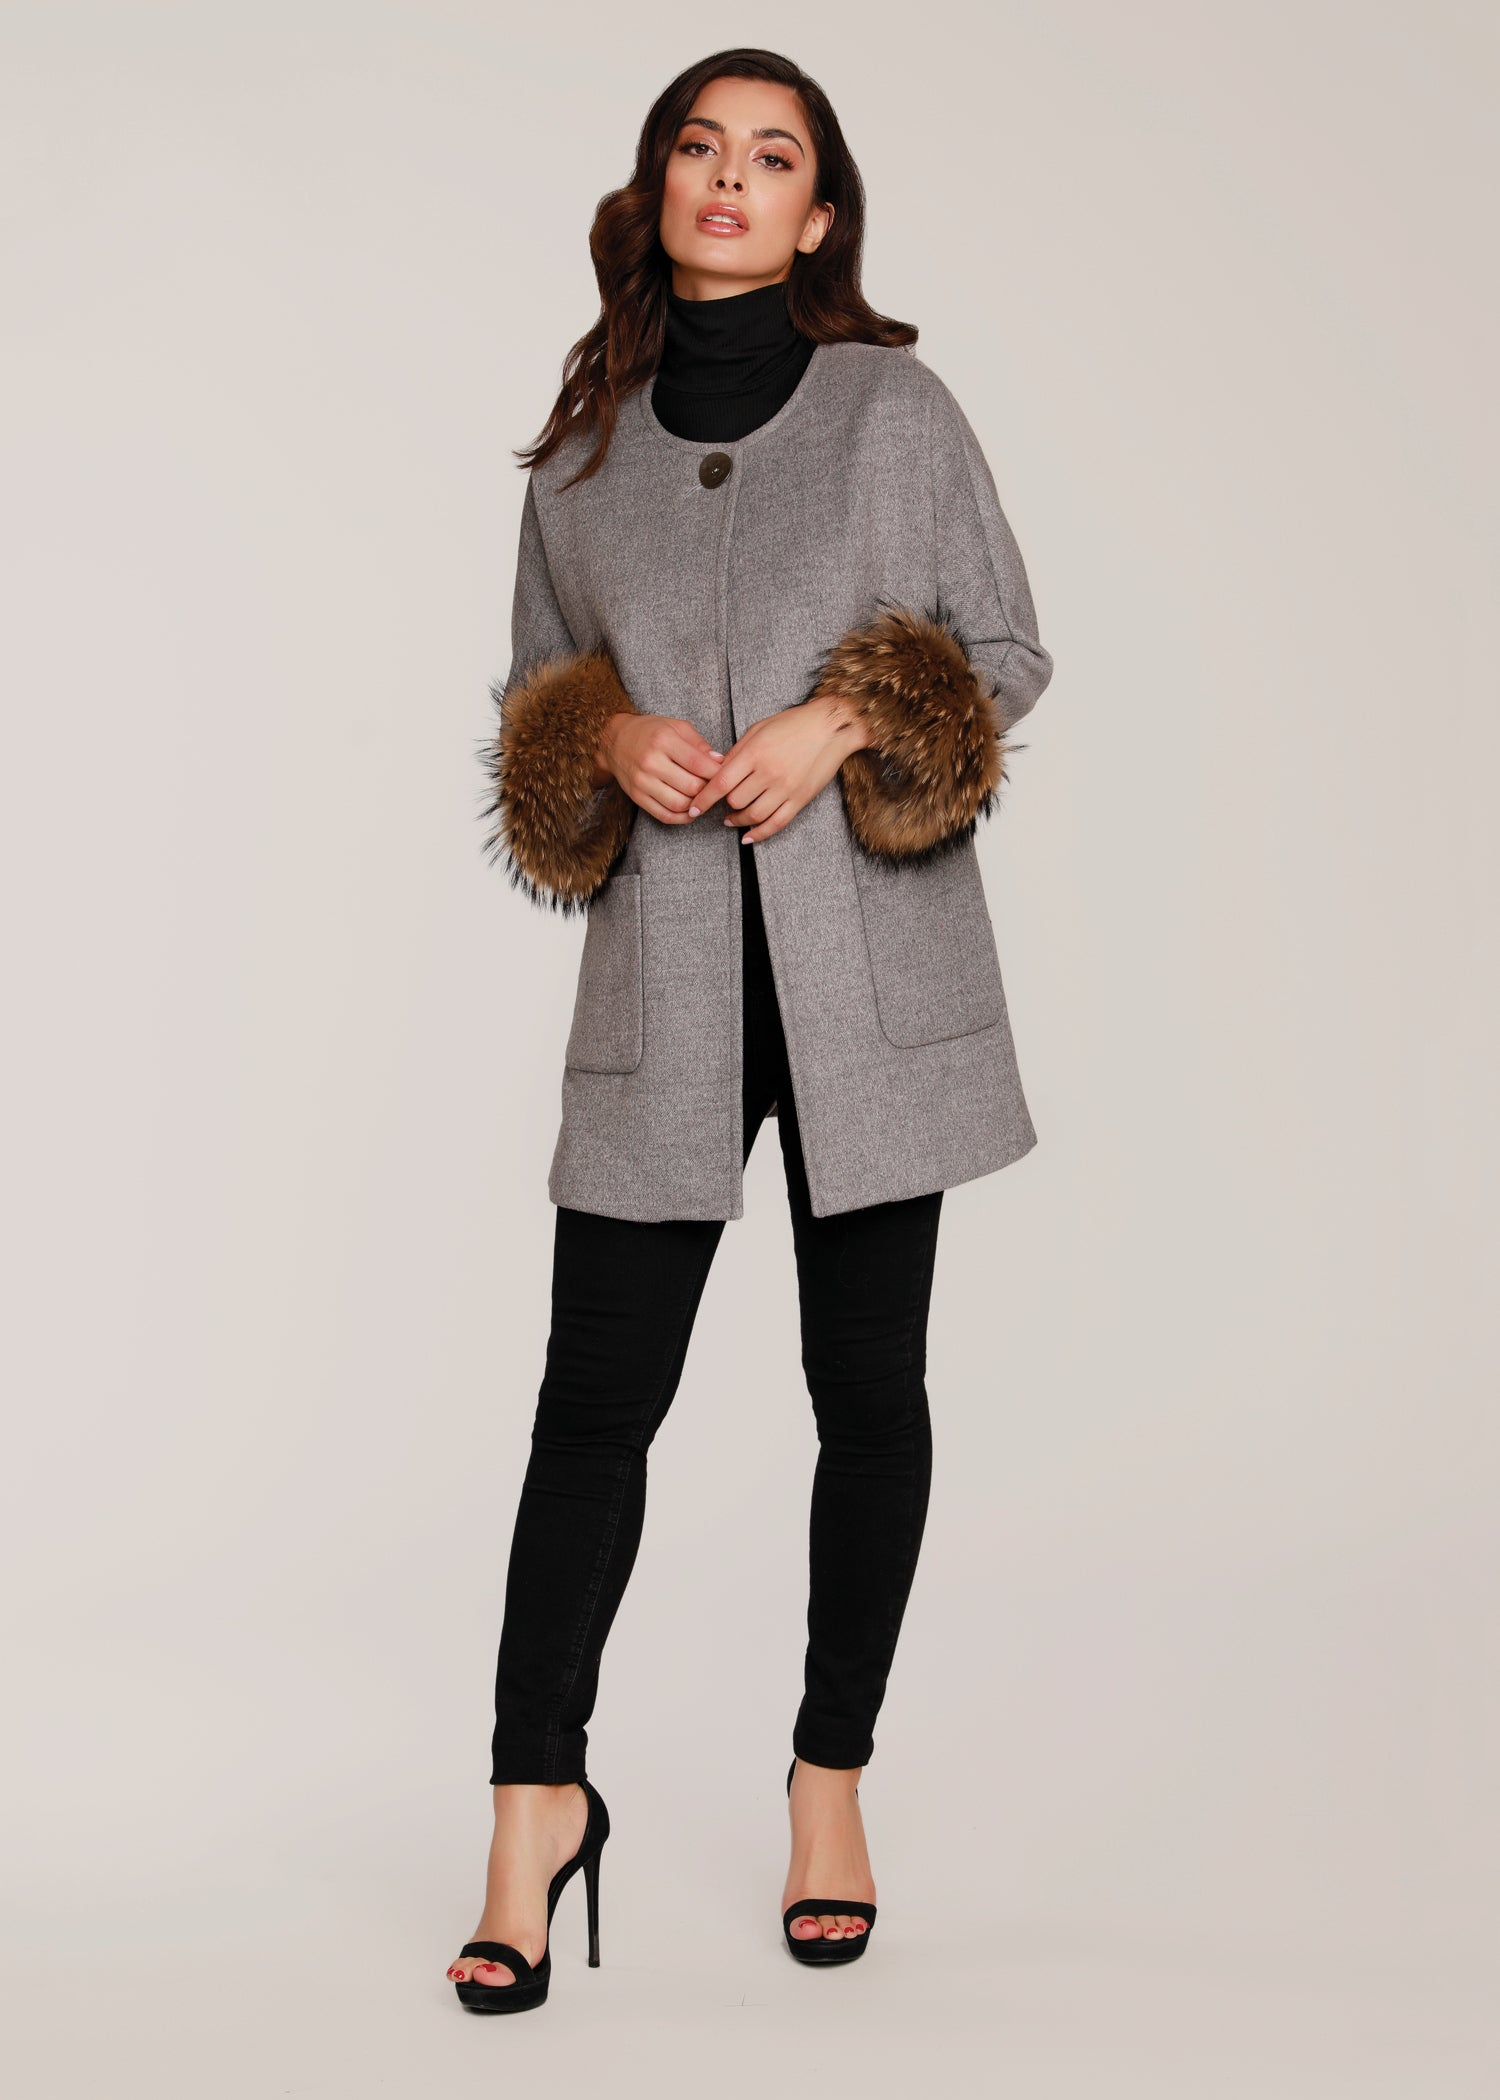 Coat w/ Fur Cuffs